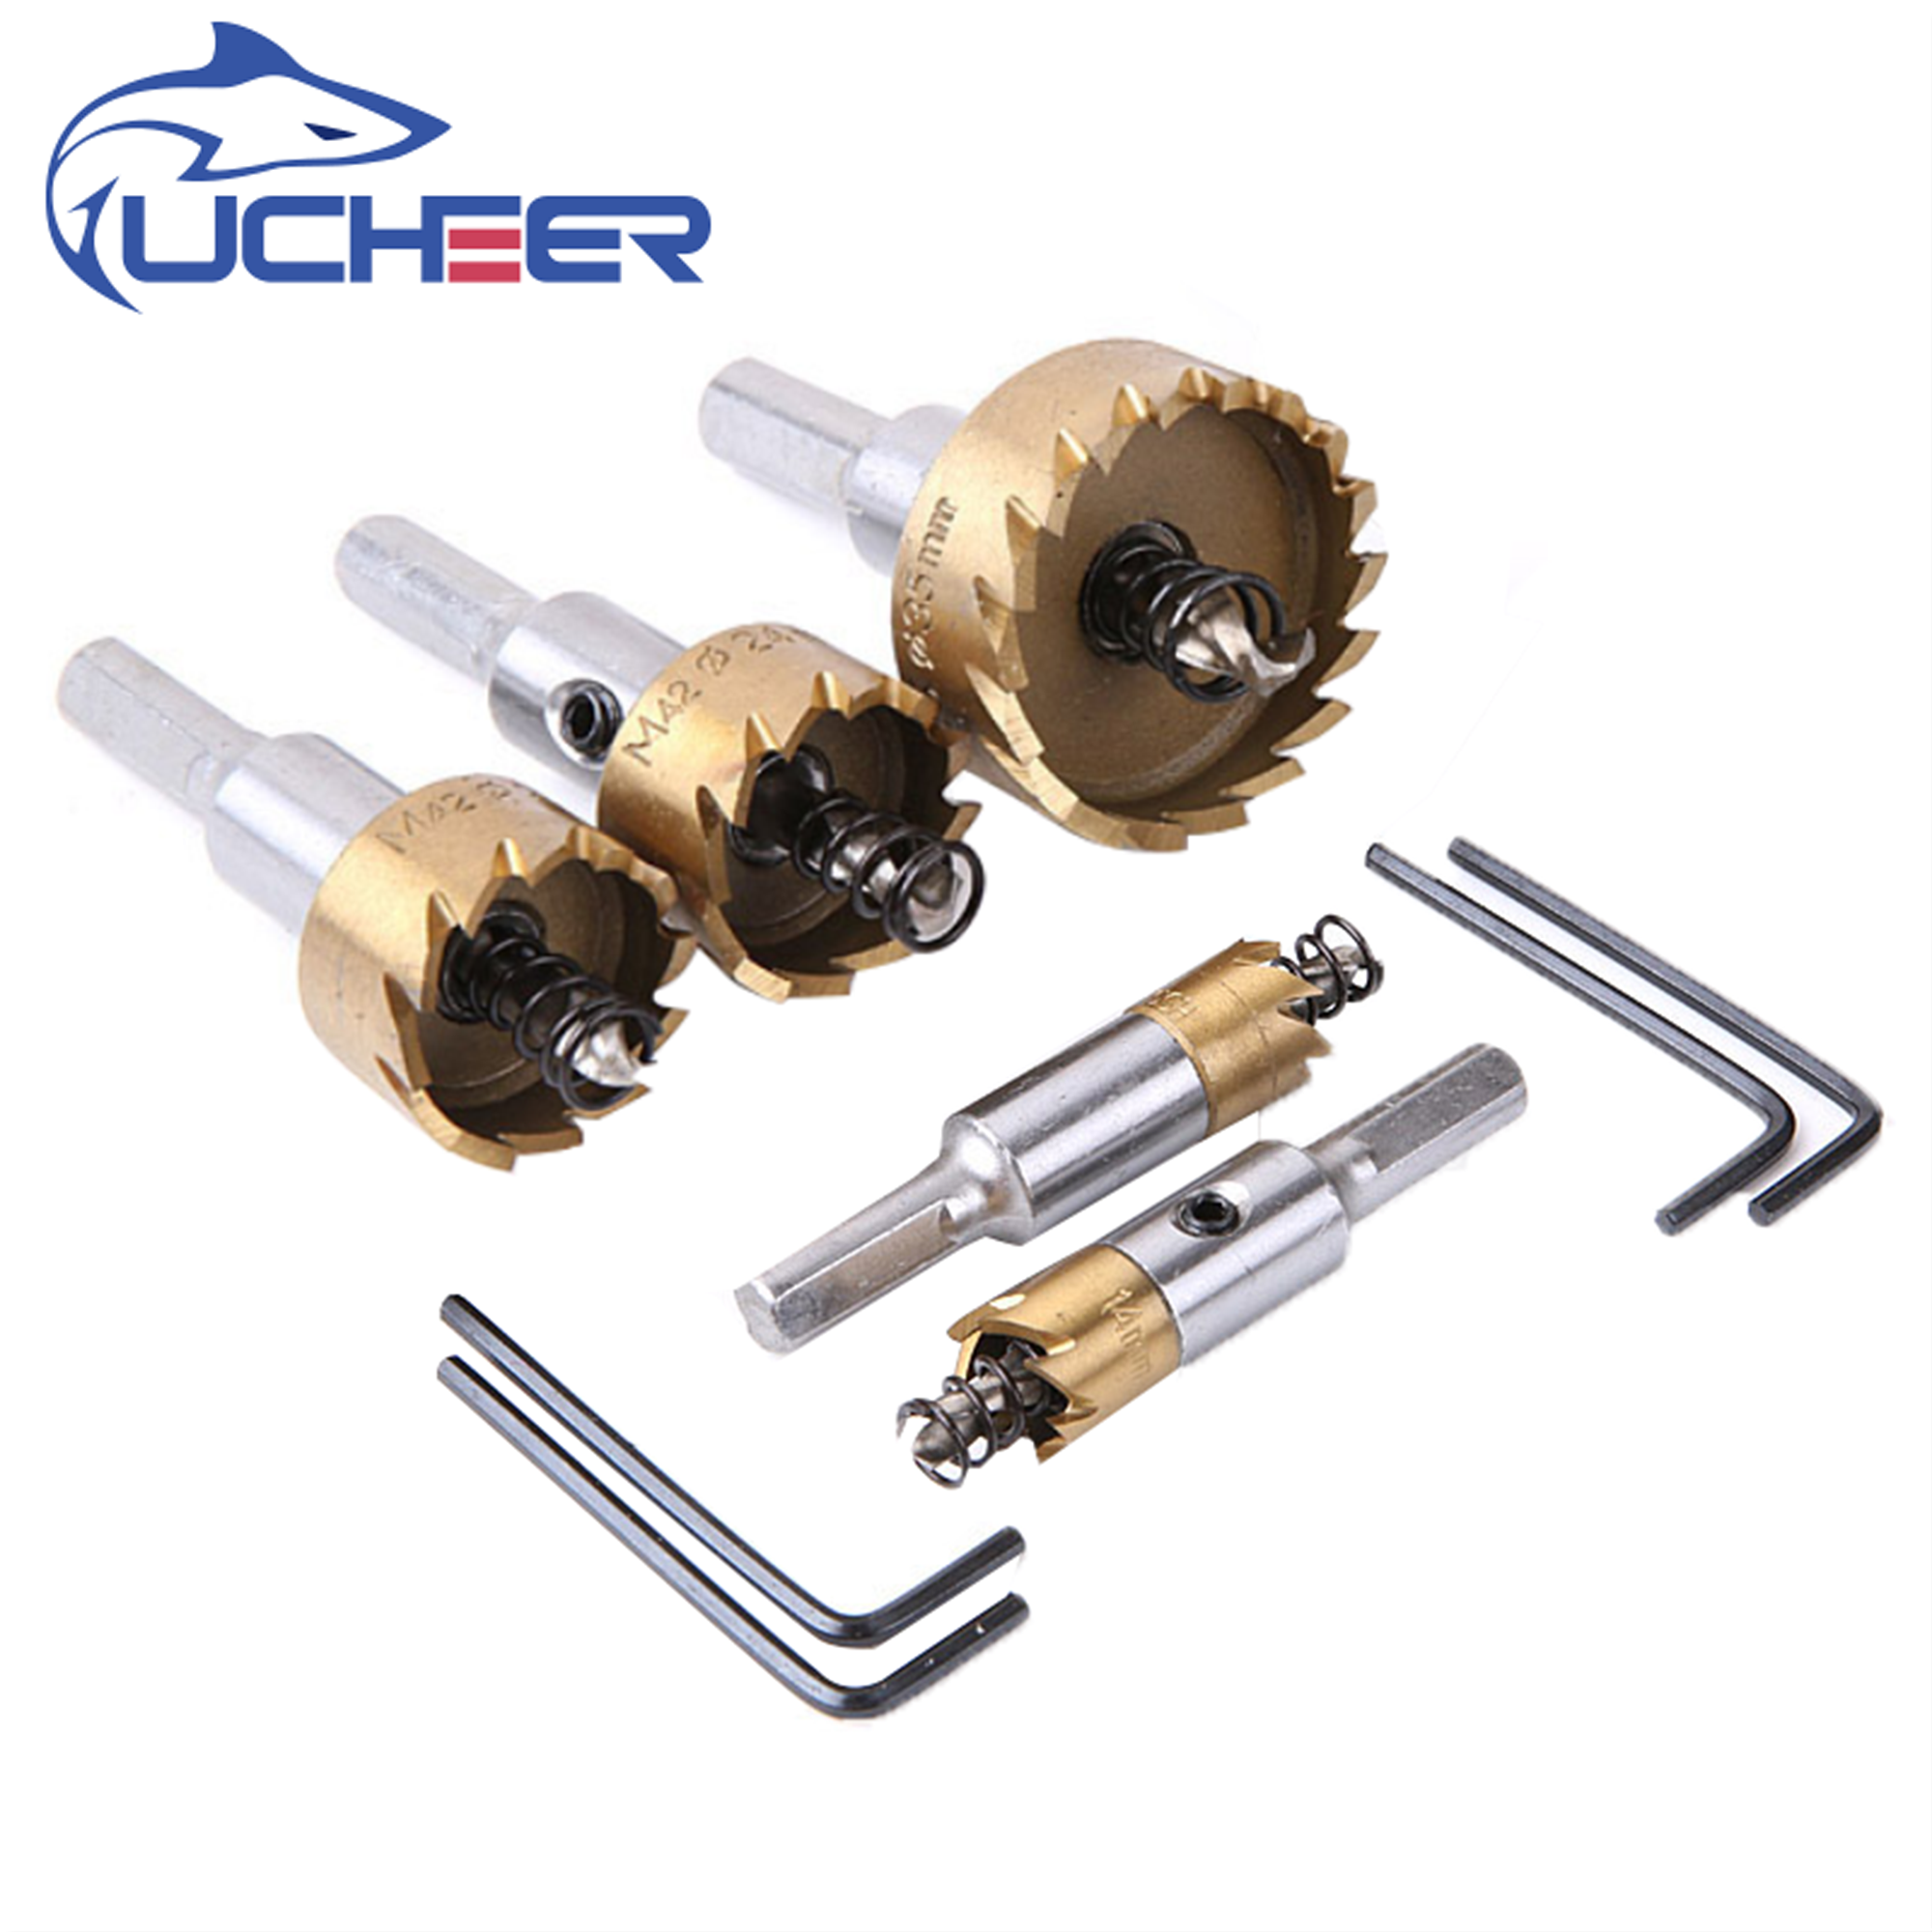 UCHEER 1pc M2 HSS Metal Hole Opener Drill Bits Thin Stainless Steel Aluminum Alloy Reamer Tin Hole Opener Metalworking Tools